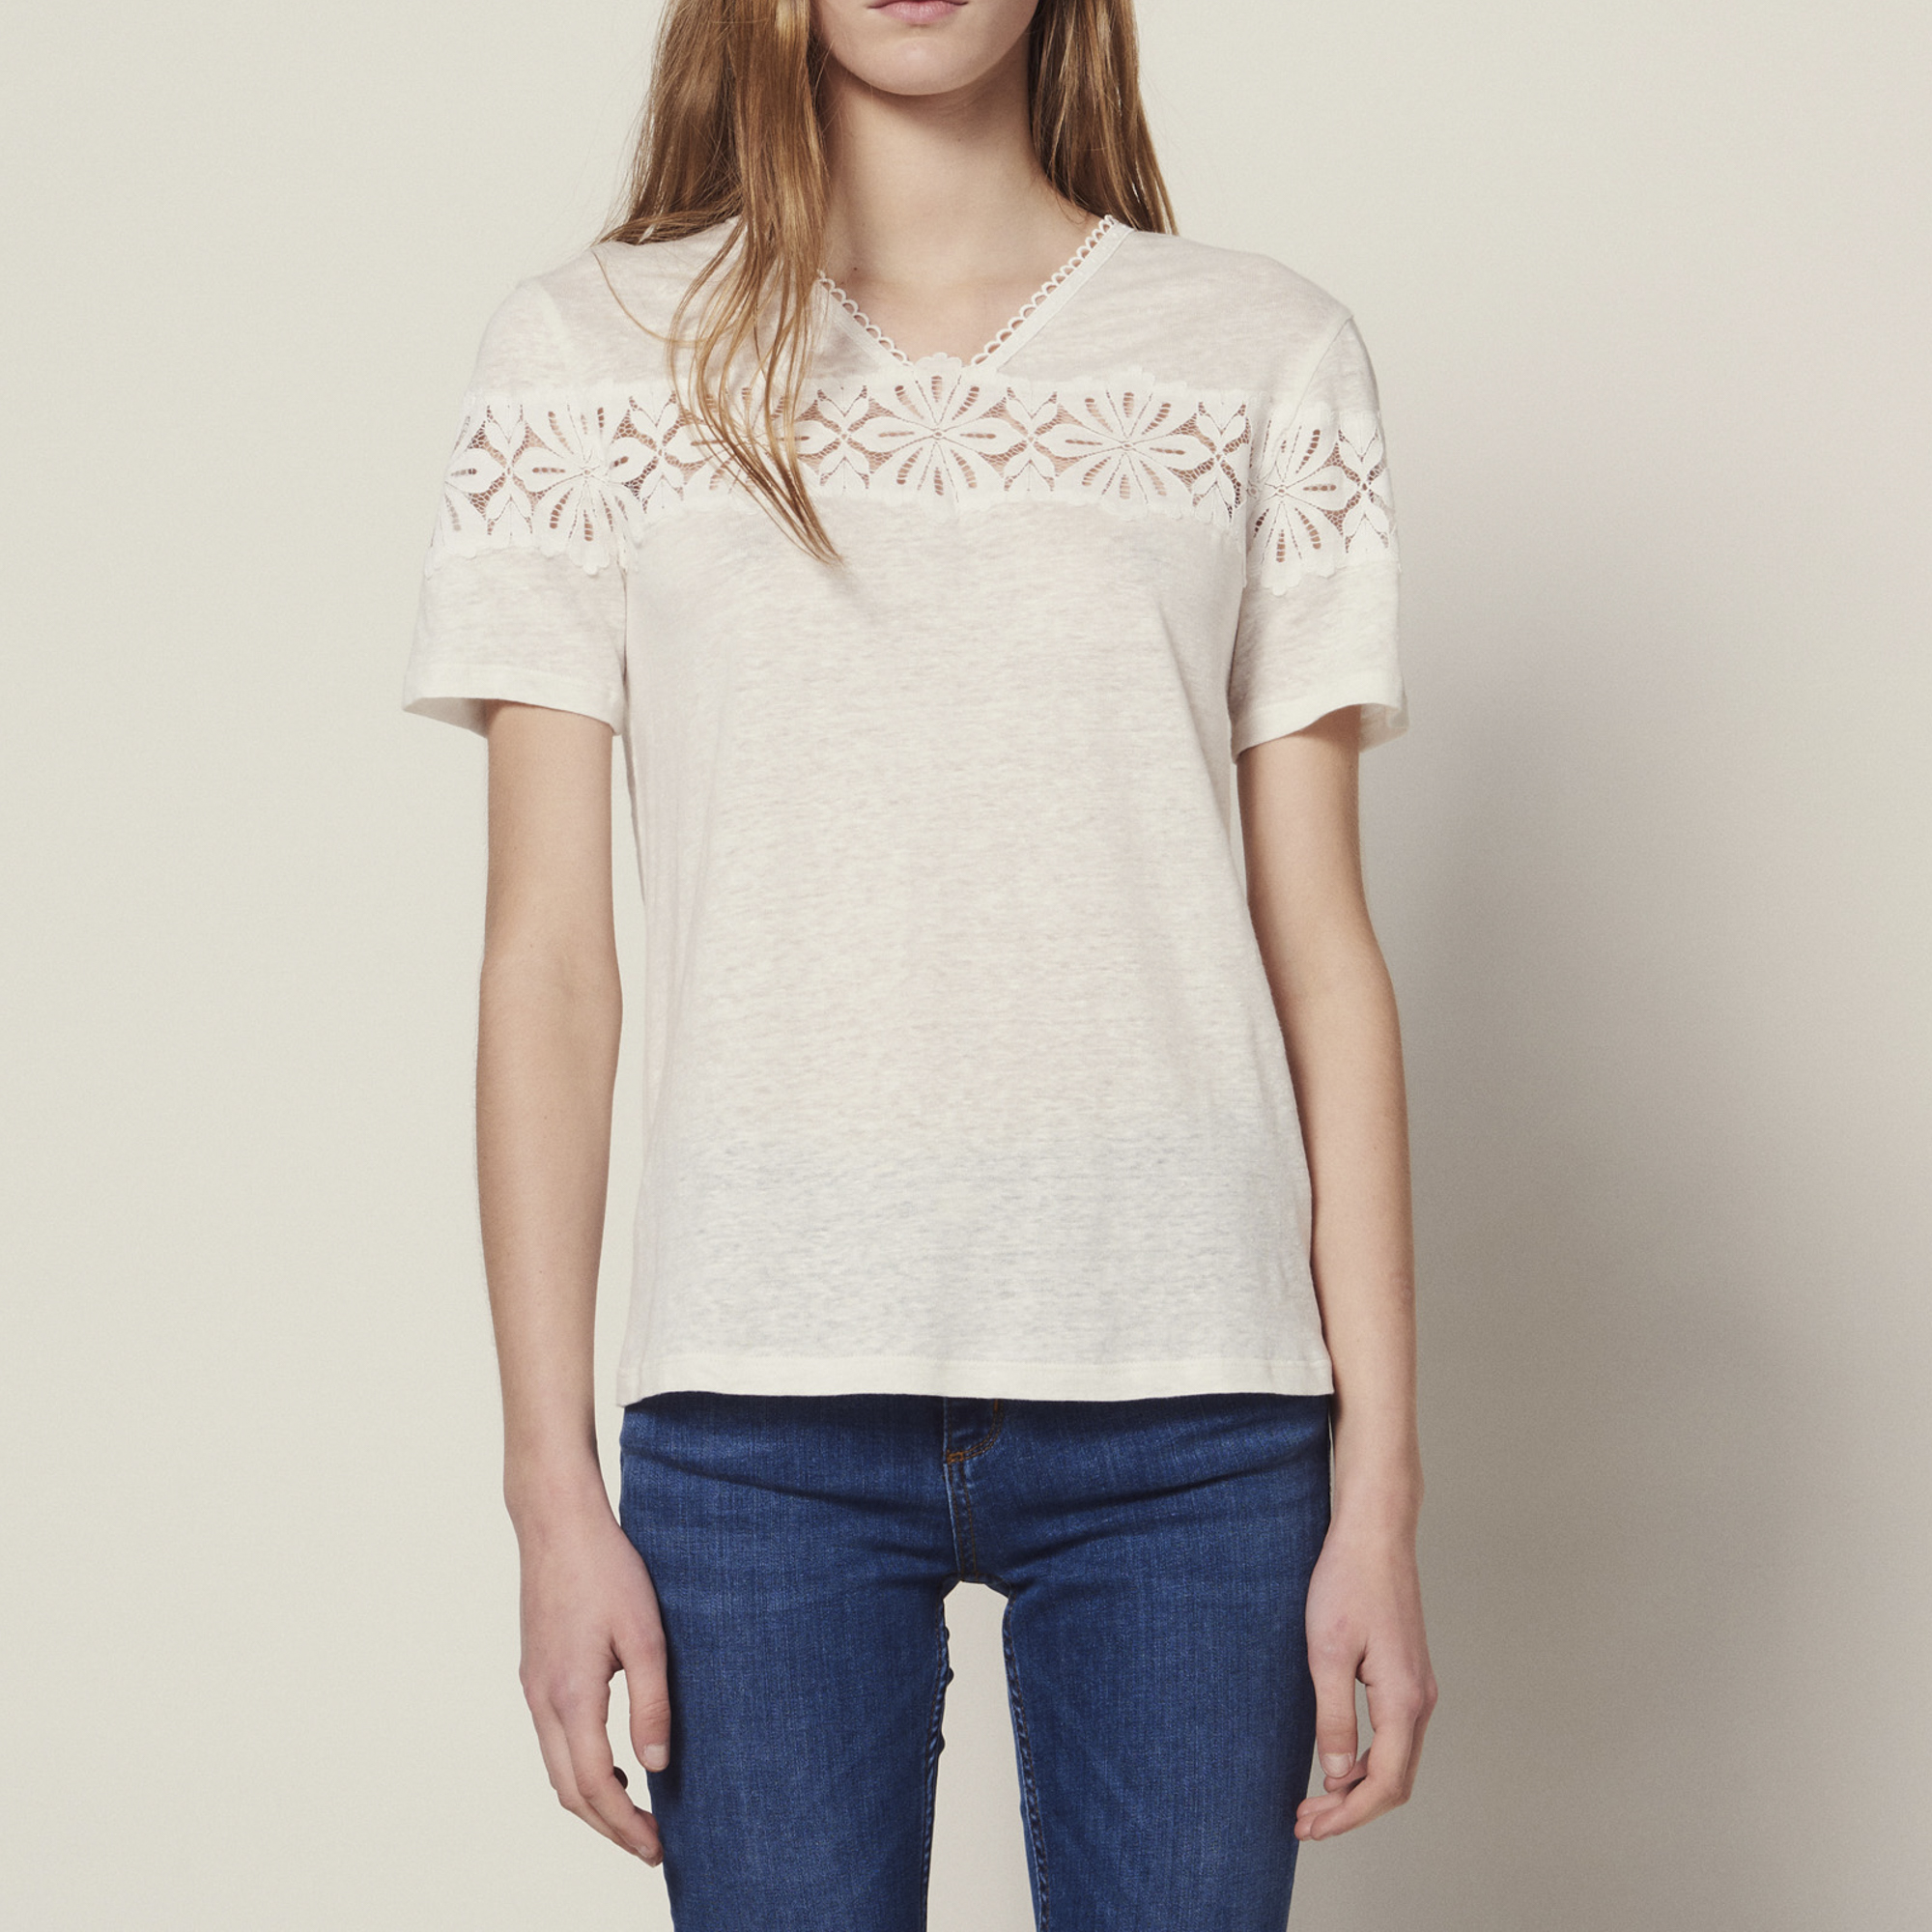 795b748b4bc40a Linen T-Shirt With Lace : Tops & Shirts color ...